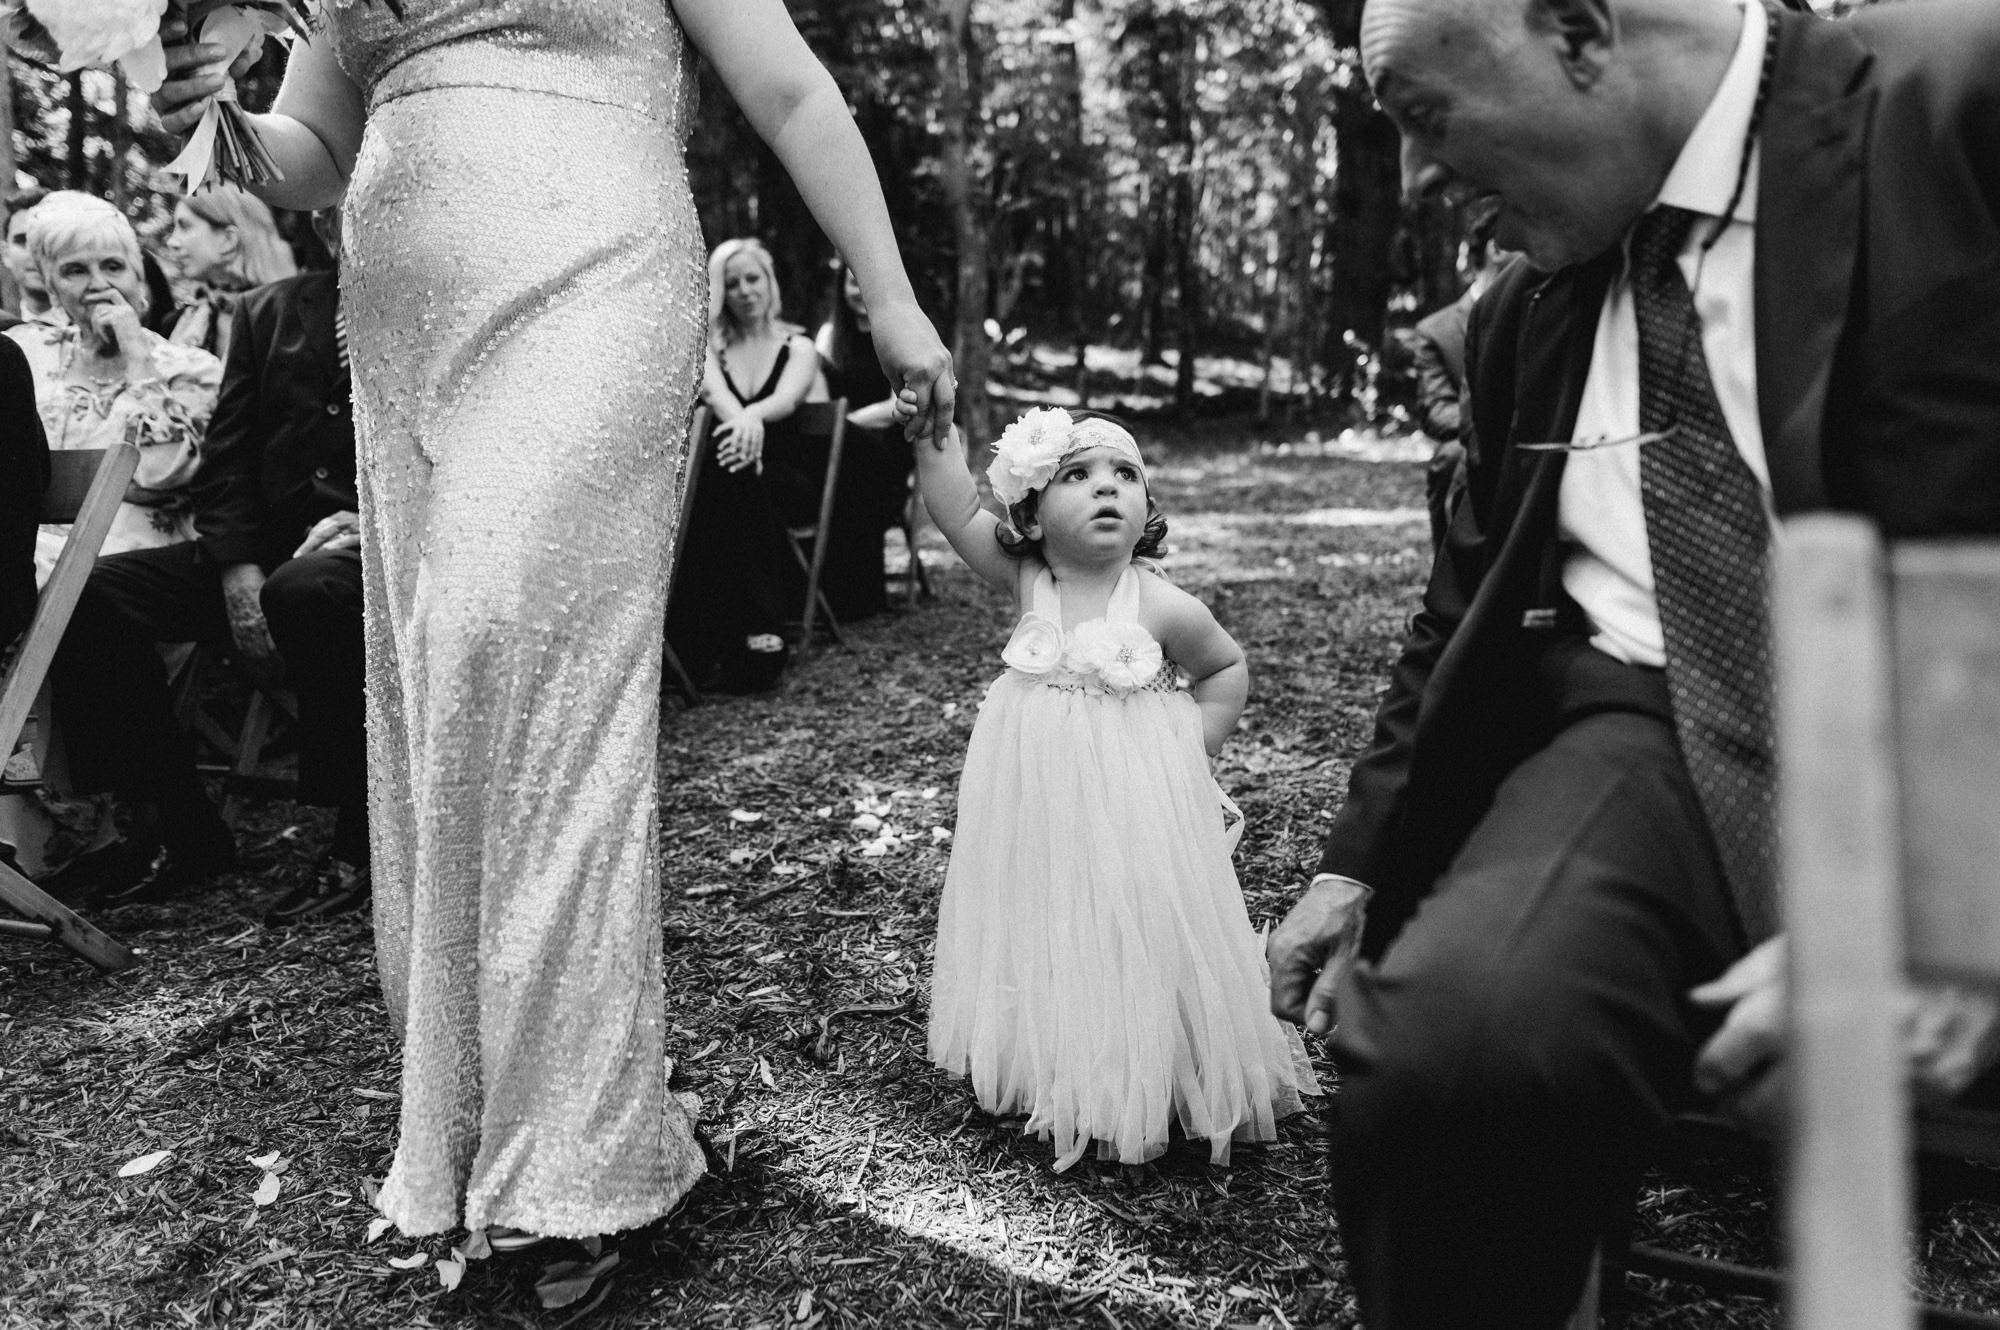 Flower girl walking down the aisle at The Pine Grove wedding ceremony location at Roxbury Barn Estate in the Catskills New York